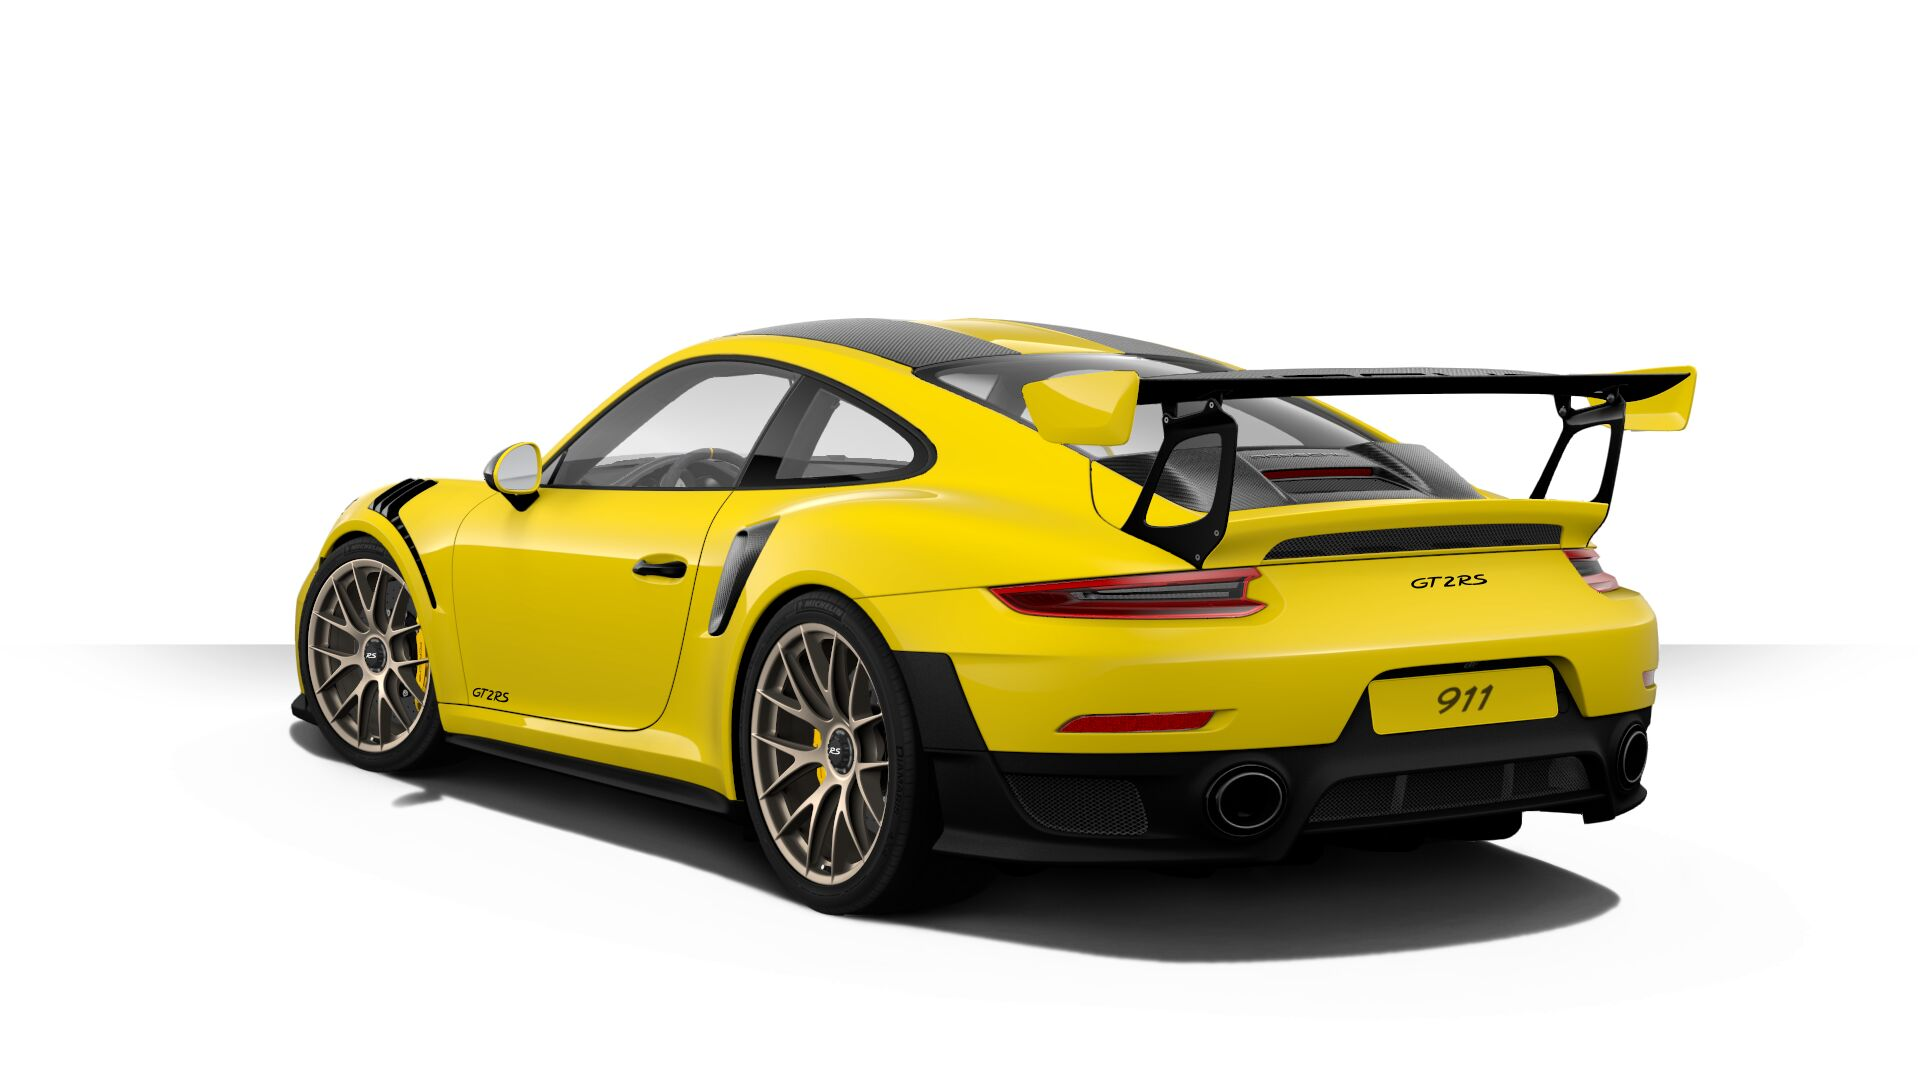 Racing-Yellow-Porsche-911-GT2-RS-2 Interesting Porsche 911 Gt2 and Gt3 Cars Trend